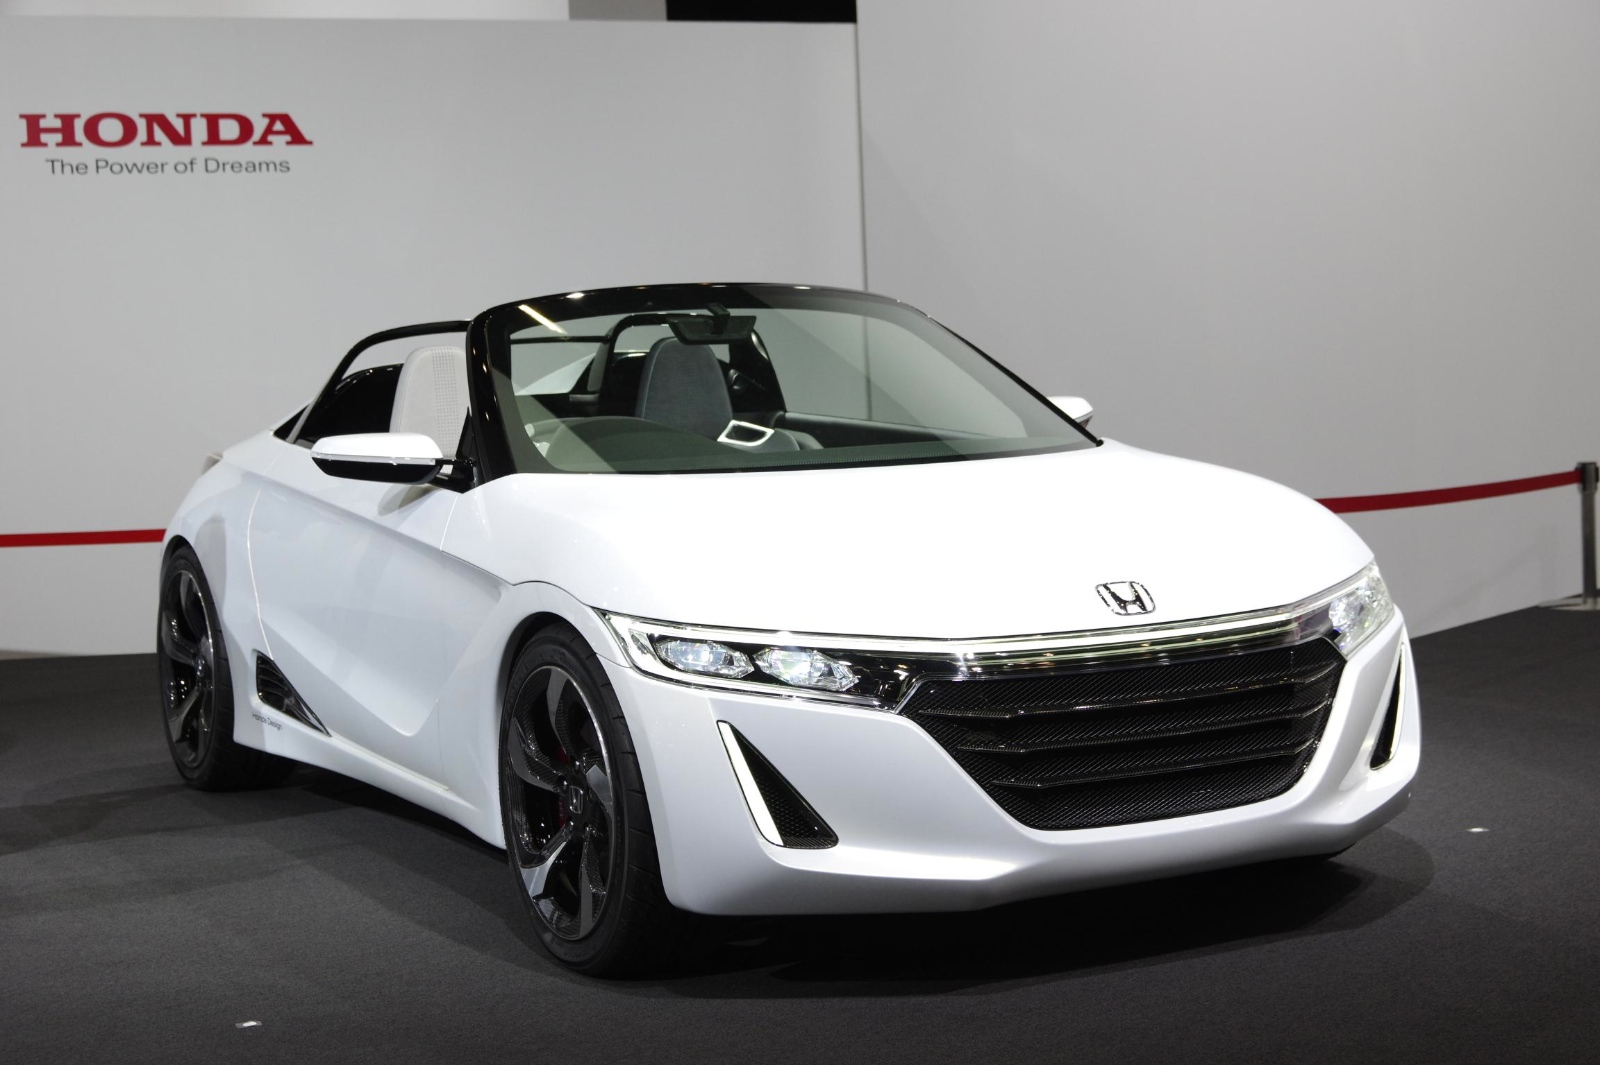 Shrunken NSX: Honda S660 Kei Sportscar Coming in 2015 - autoevolution